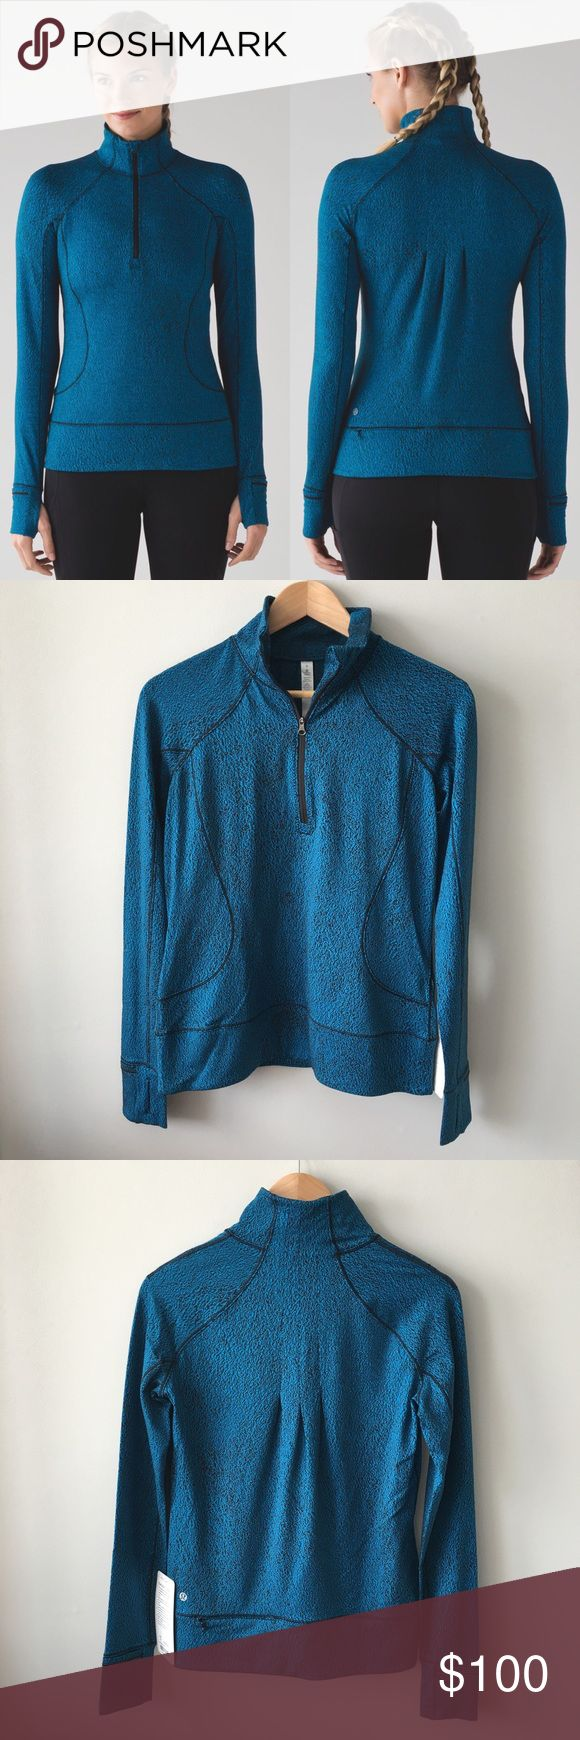 🍋 Lululemon Rush Hour 1/2 Zip New with tags, Lululemon Rush Hour 1/2 Zip in Spray Jacquard Shocking Blue. Super soft rulu & cuffins. More details on last photo. PRICE FIRM unless bundled. Bundle & save 💰! Sorry - 🚫 trades! lululemon athletica Tops